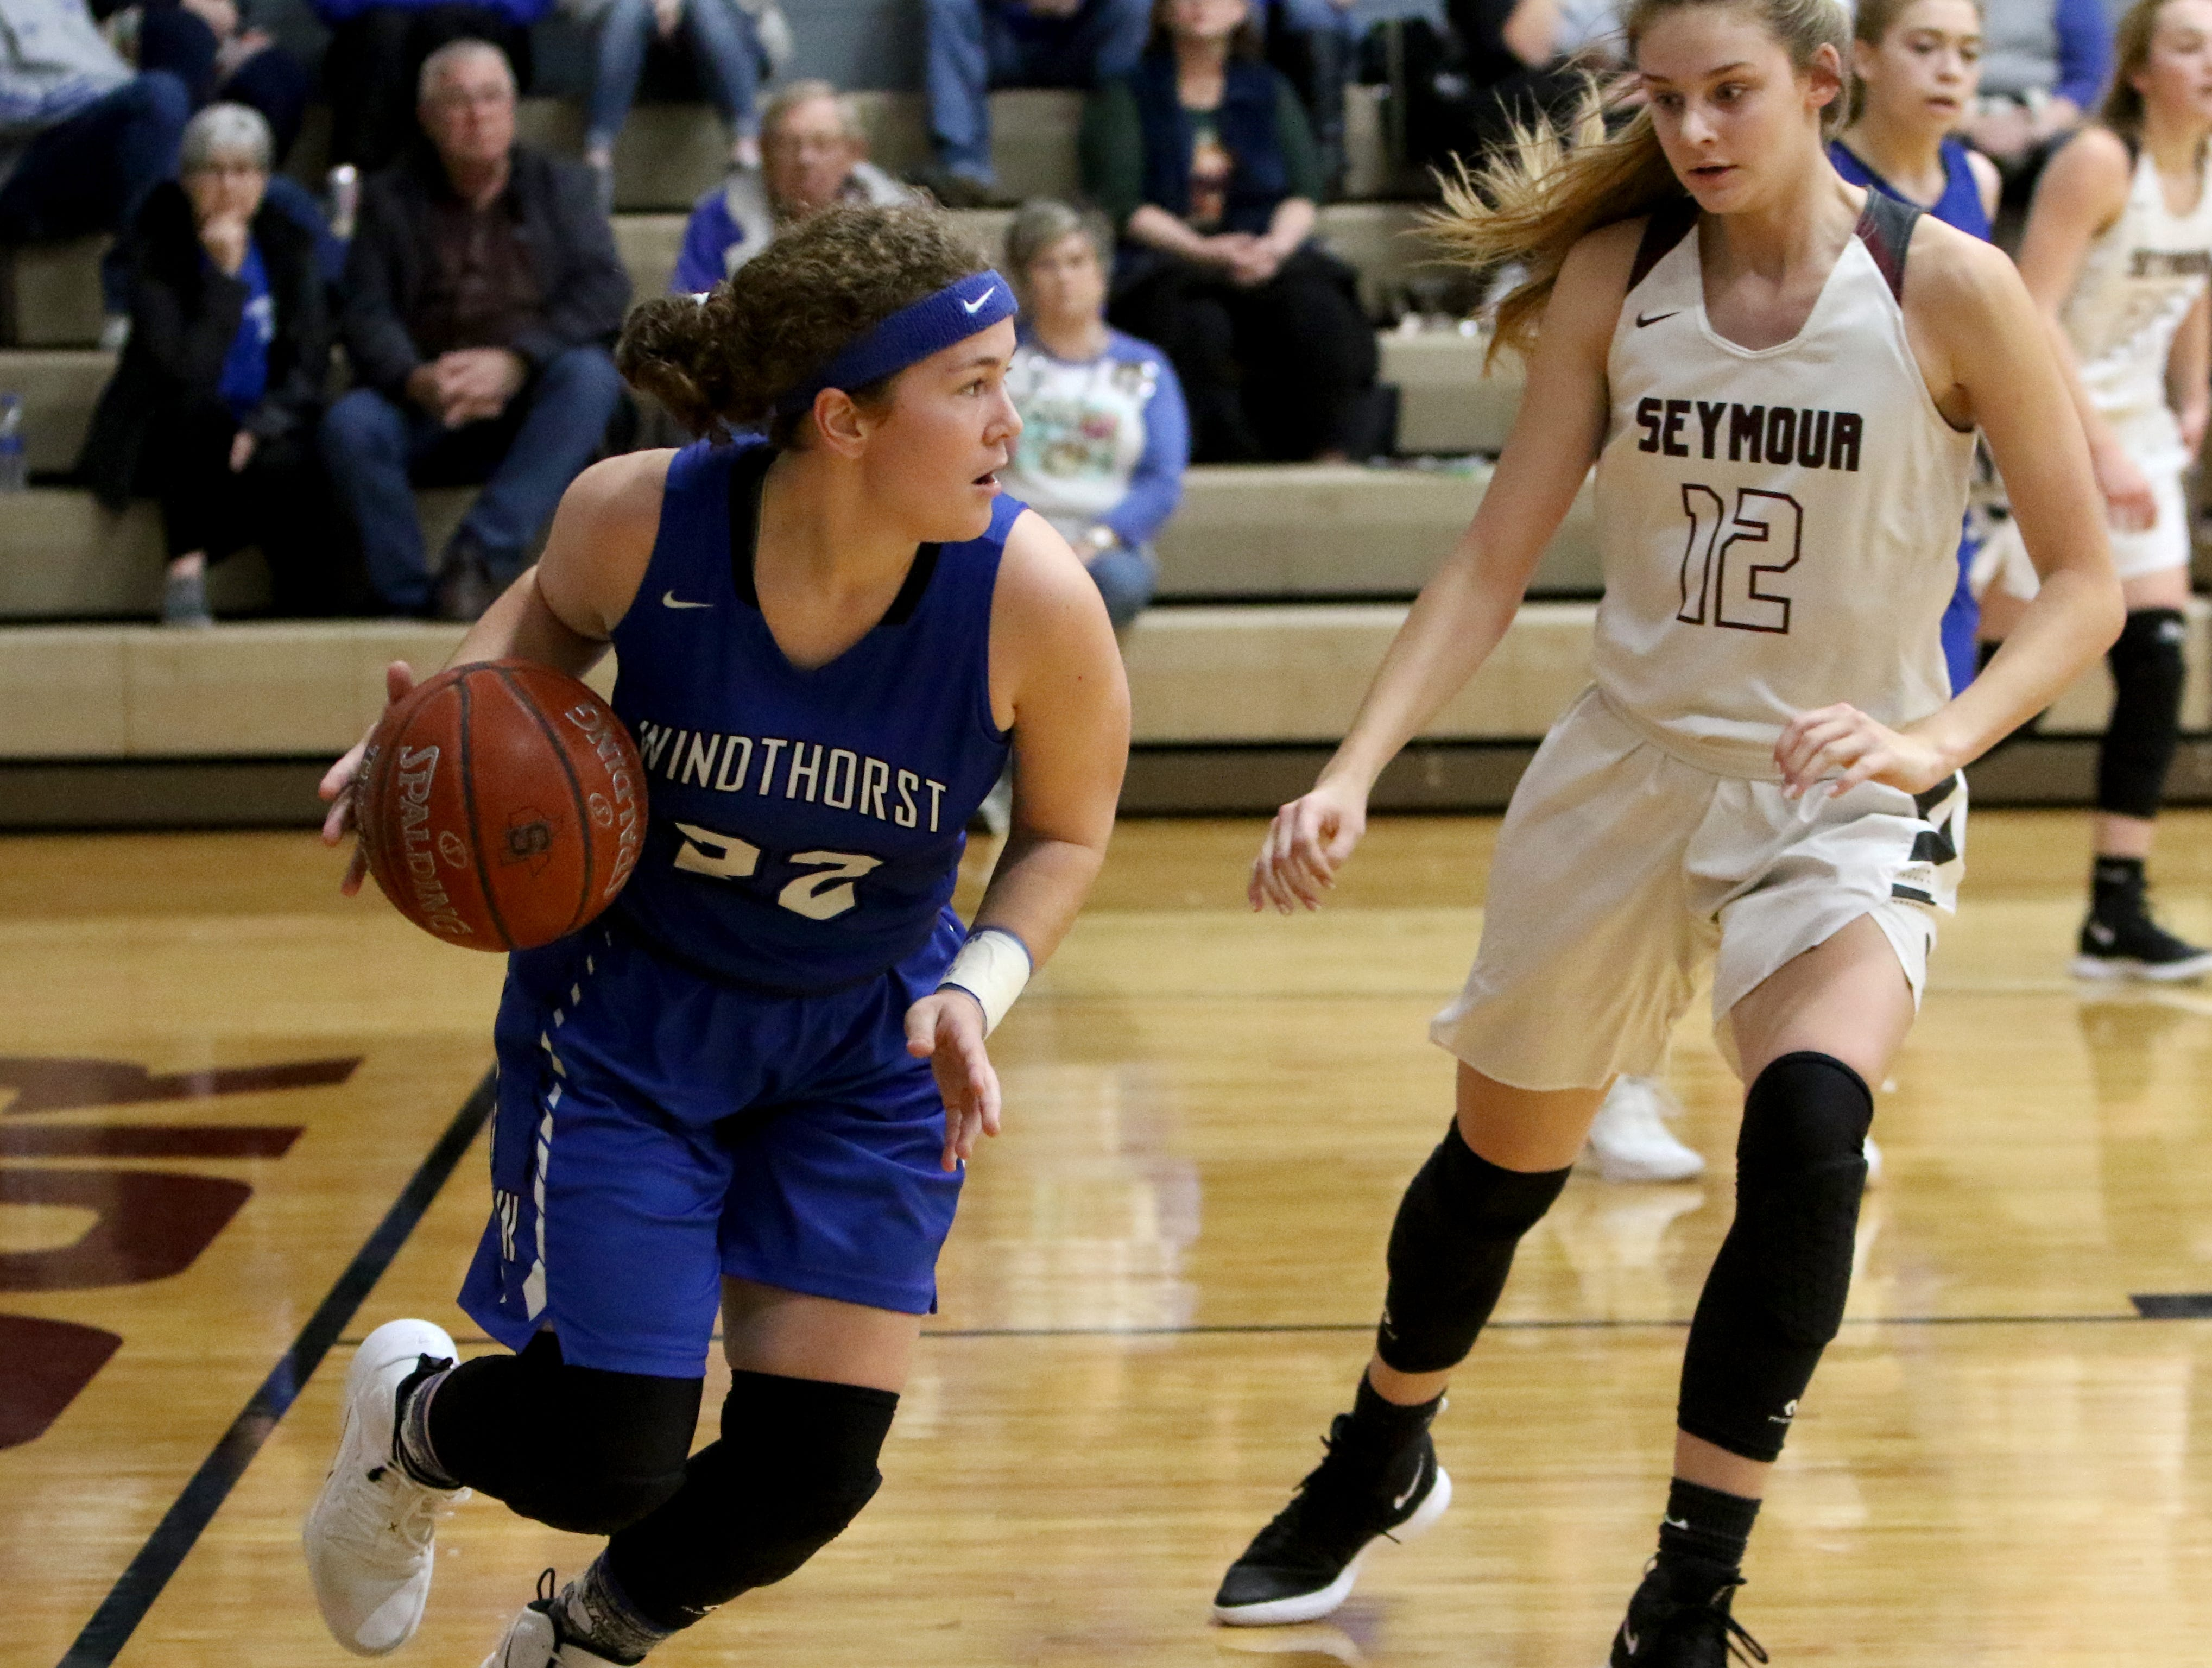 Windthorst's Abbby Brown dribbles by Seymour's Tess Decker Tuesday, Jan.8, 2019, in Seymour.